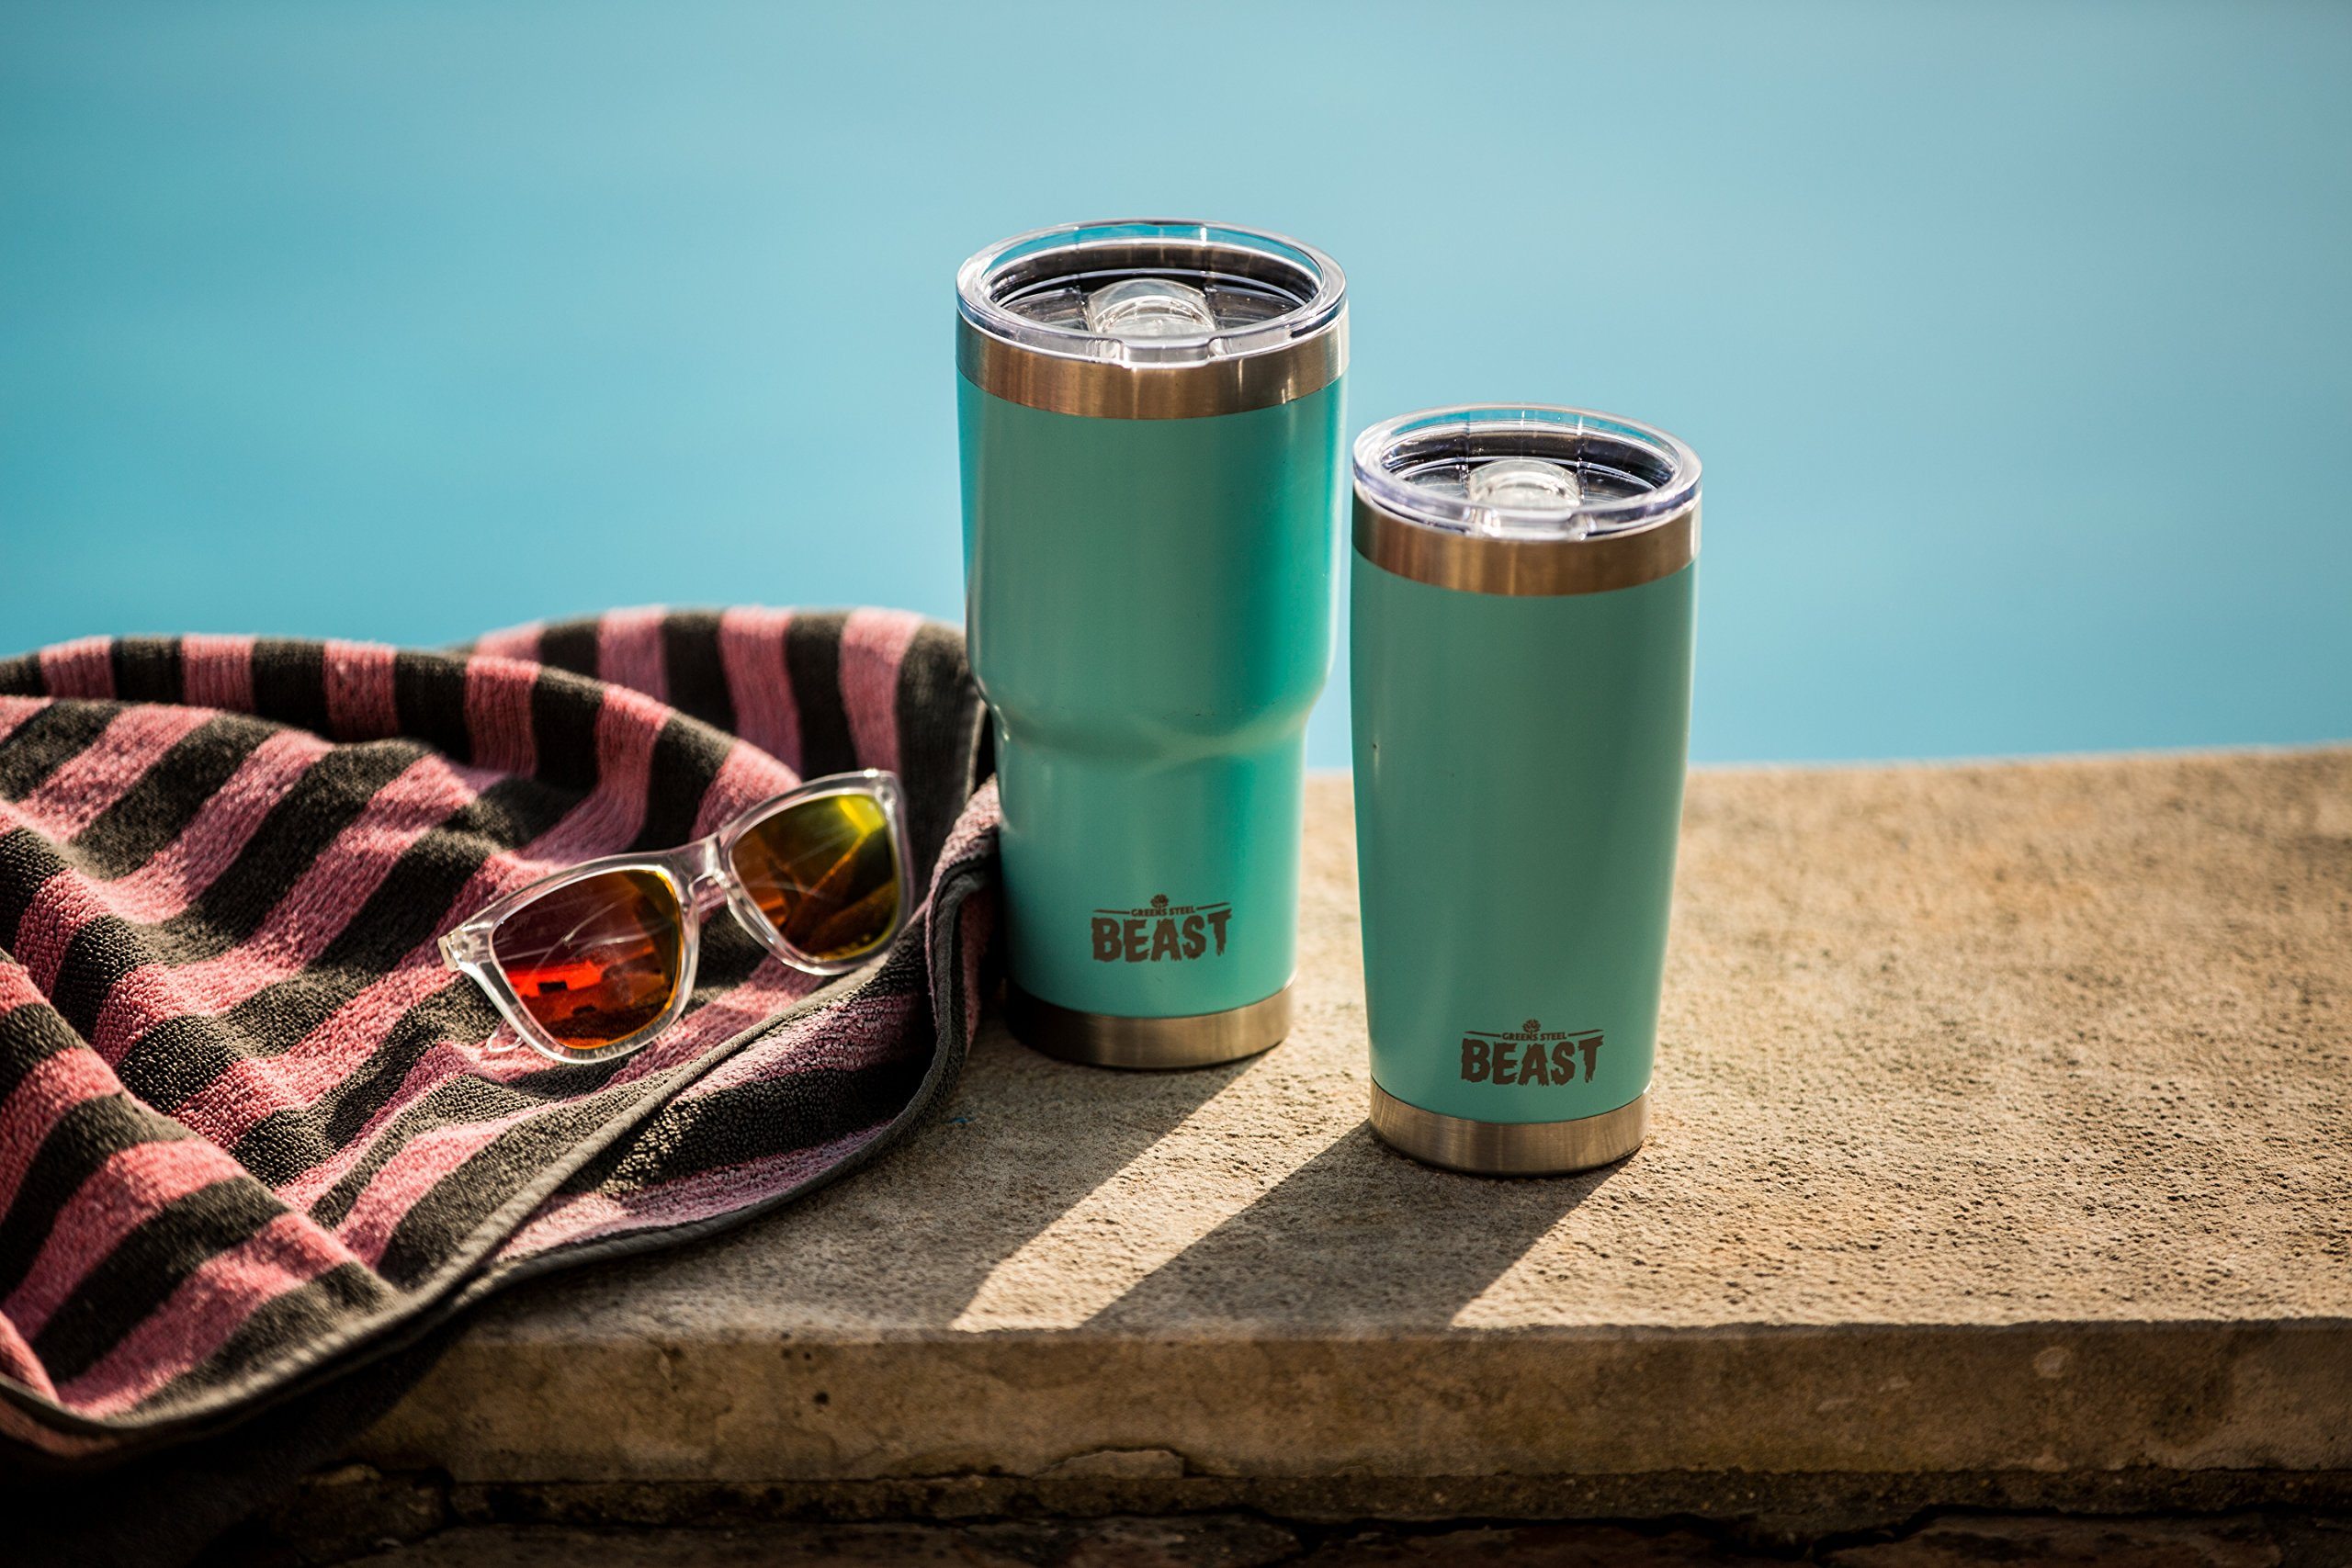 BEAST 30 oz Teal Tumbler Stainless Steel Insulated Coffee Cup with Lid, 2 Straws, Brush & Gift Box by Greens Steel (30oz, Aquamarine Blue) by Greens Steel (Image #3)